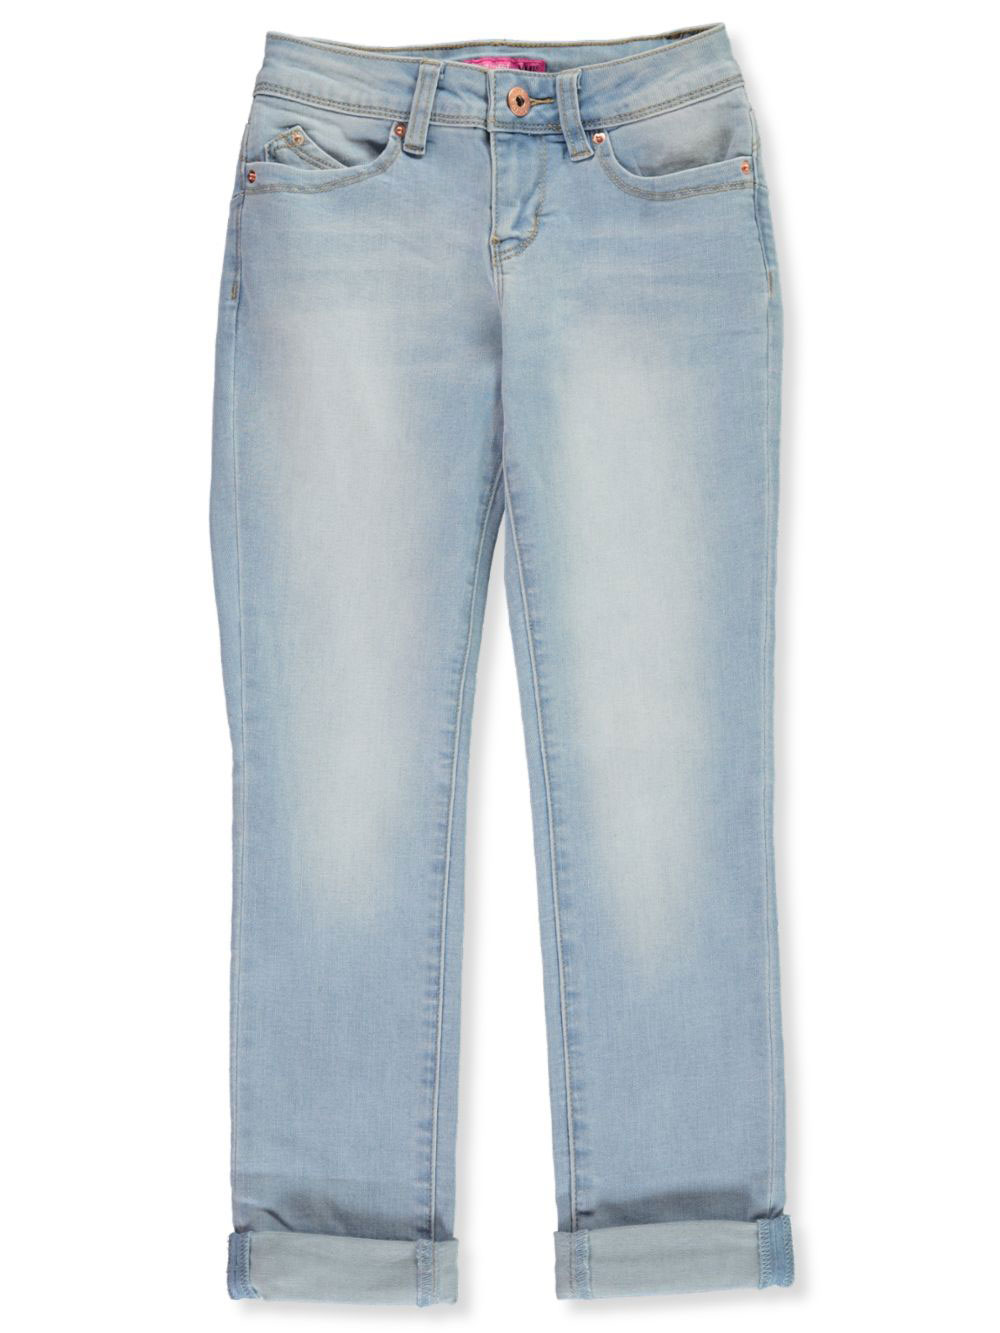 Girls Light Blue Jeans